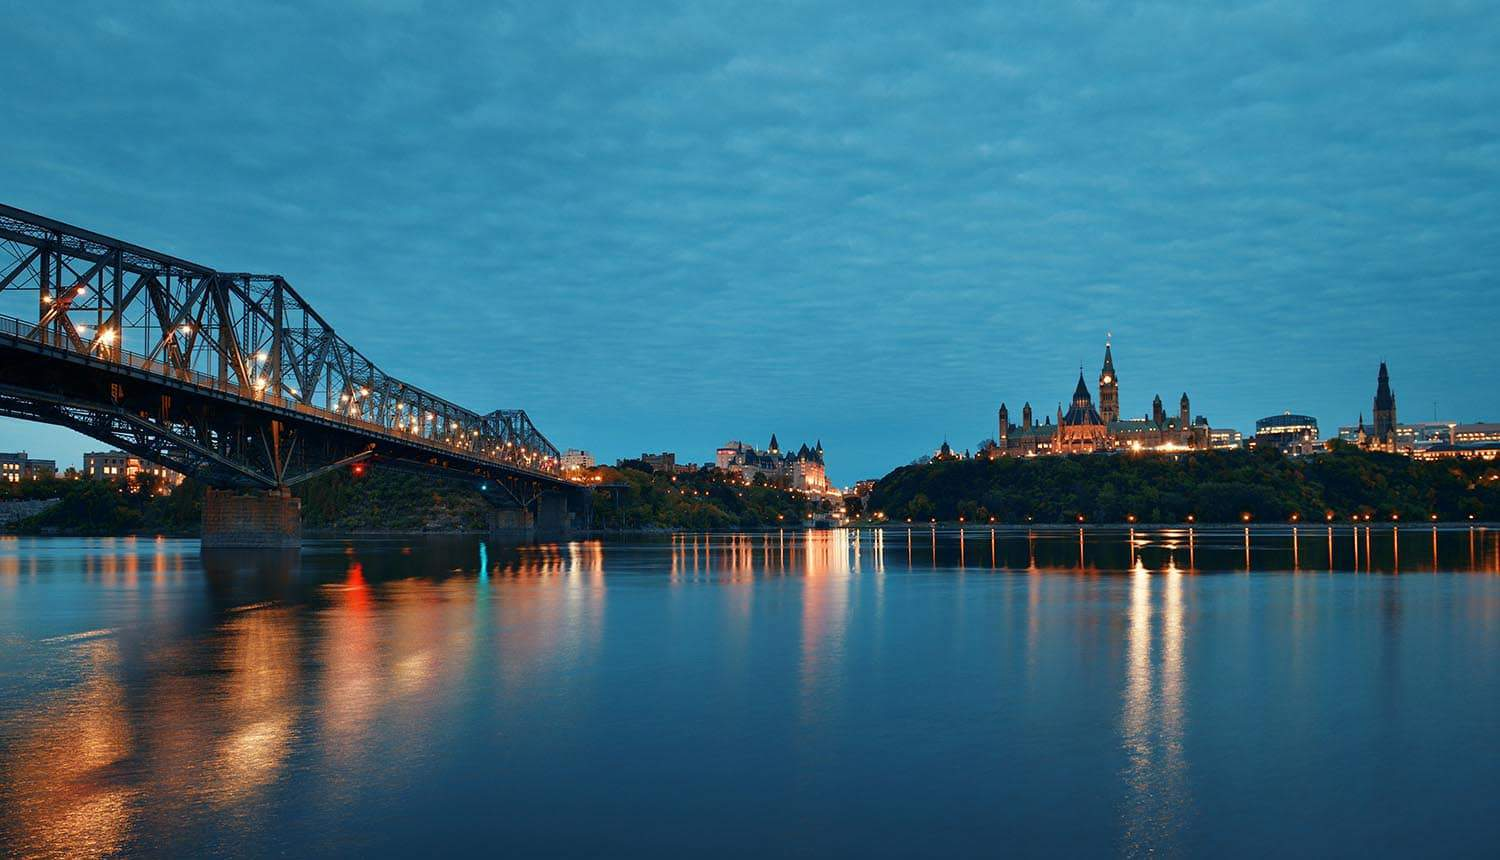 Parliament Hill at dusk over water in Ottawa, Canada showing credential stuffing attack